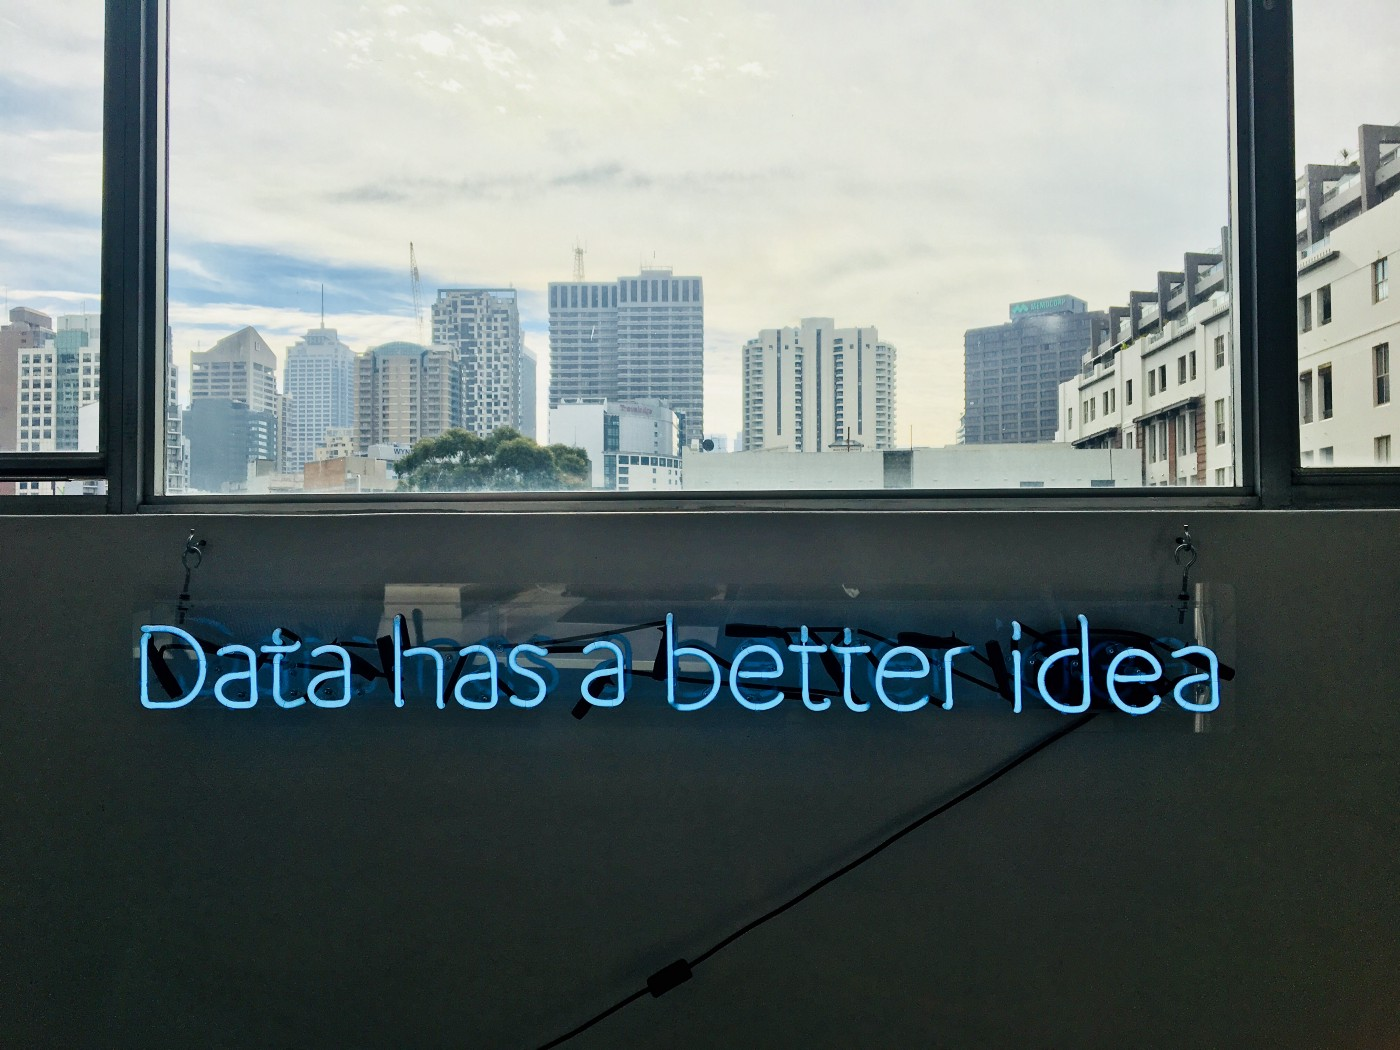 A pic which says Data has a better idea.